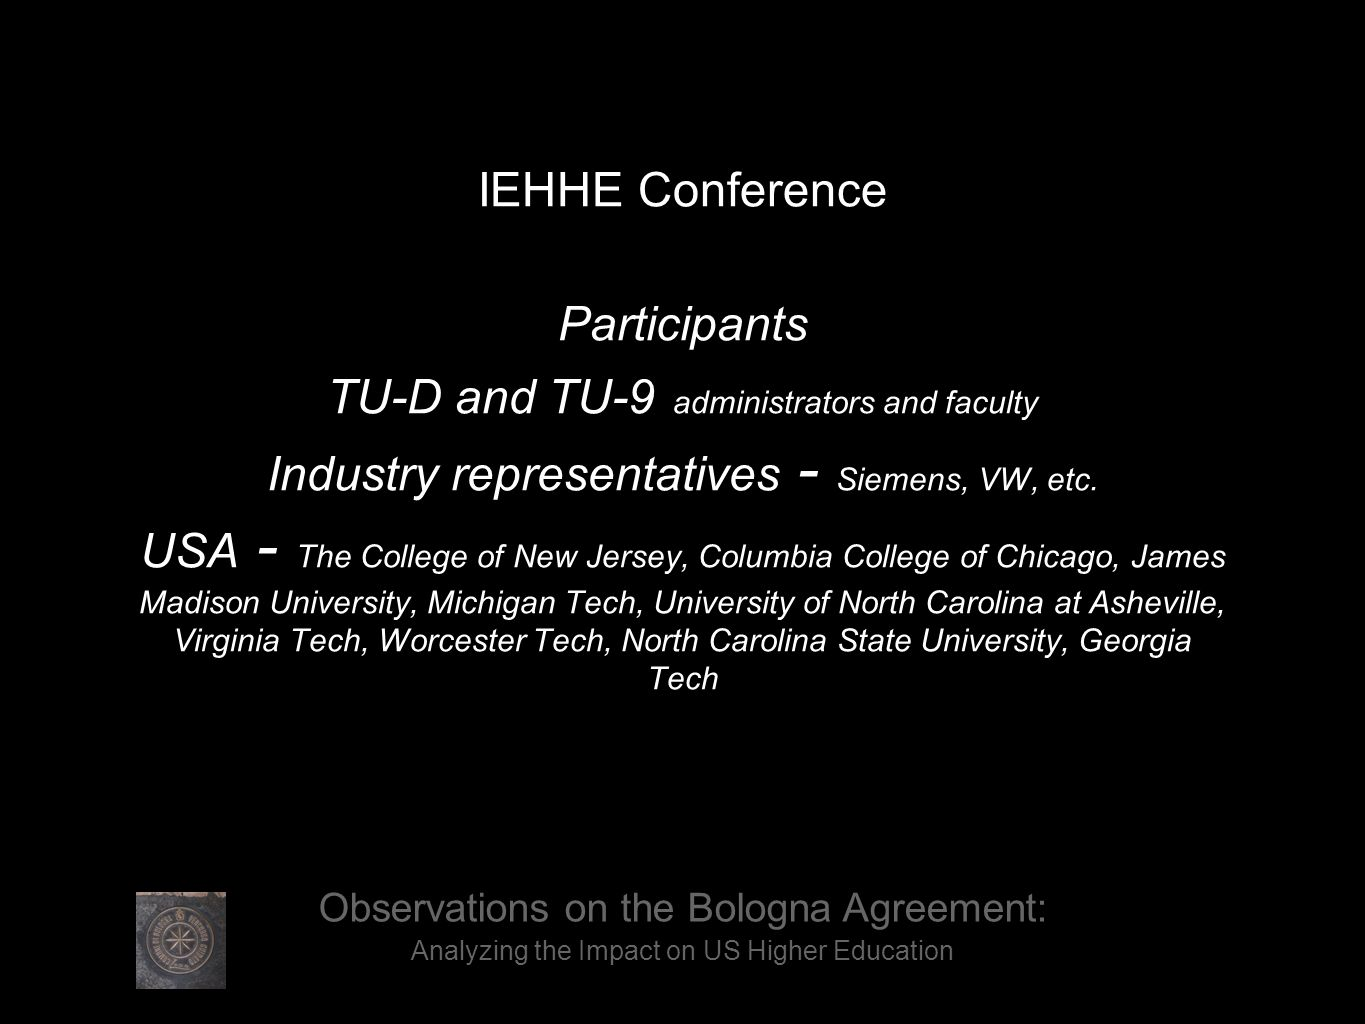 IEHHE Conference Participants TU-D and TU-9 administrators and faculty Industry representatives - Siemens, VW, etc.